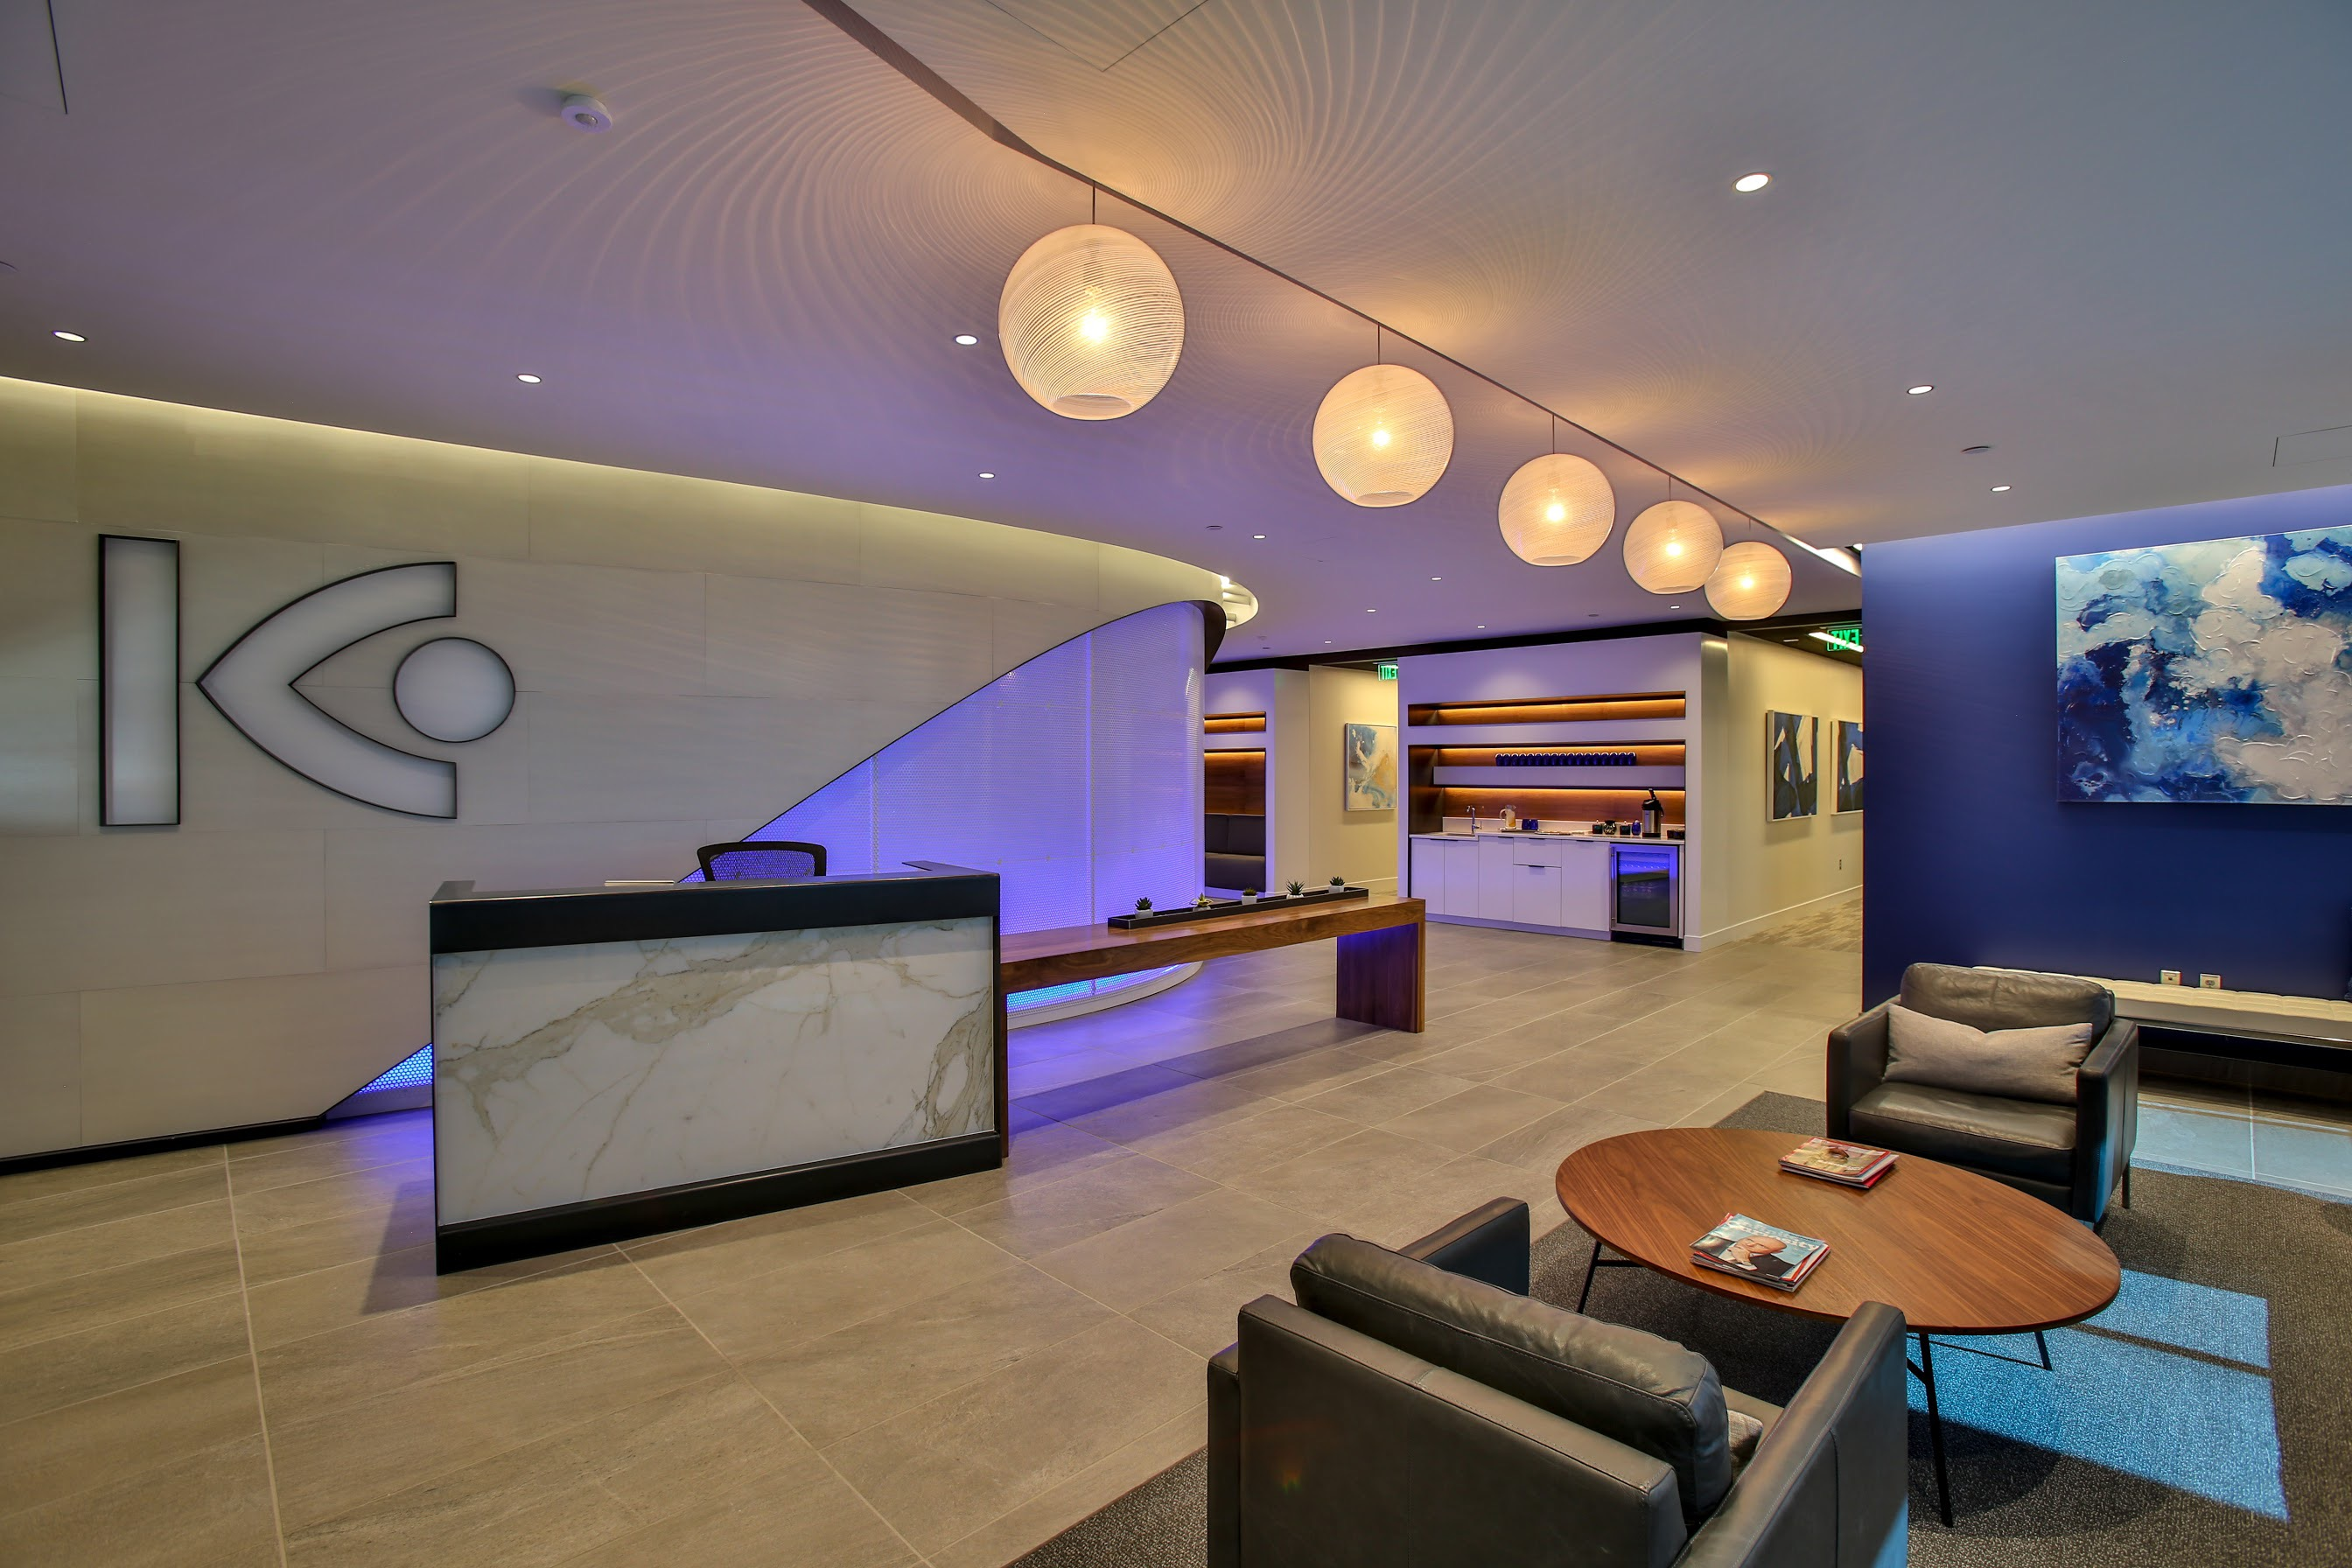 The patient reception area at Kugler Vision